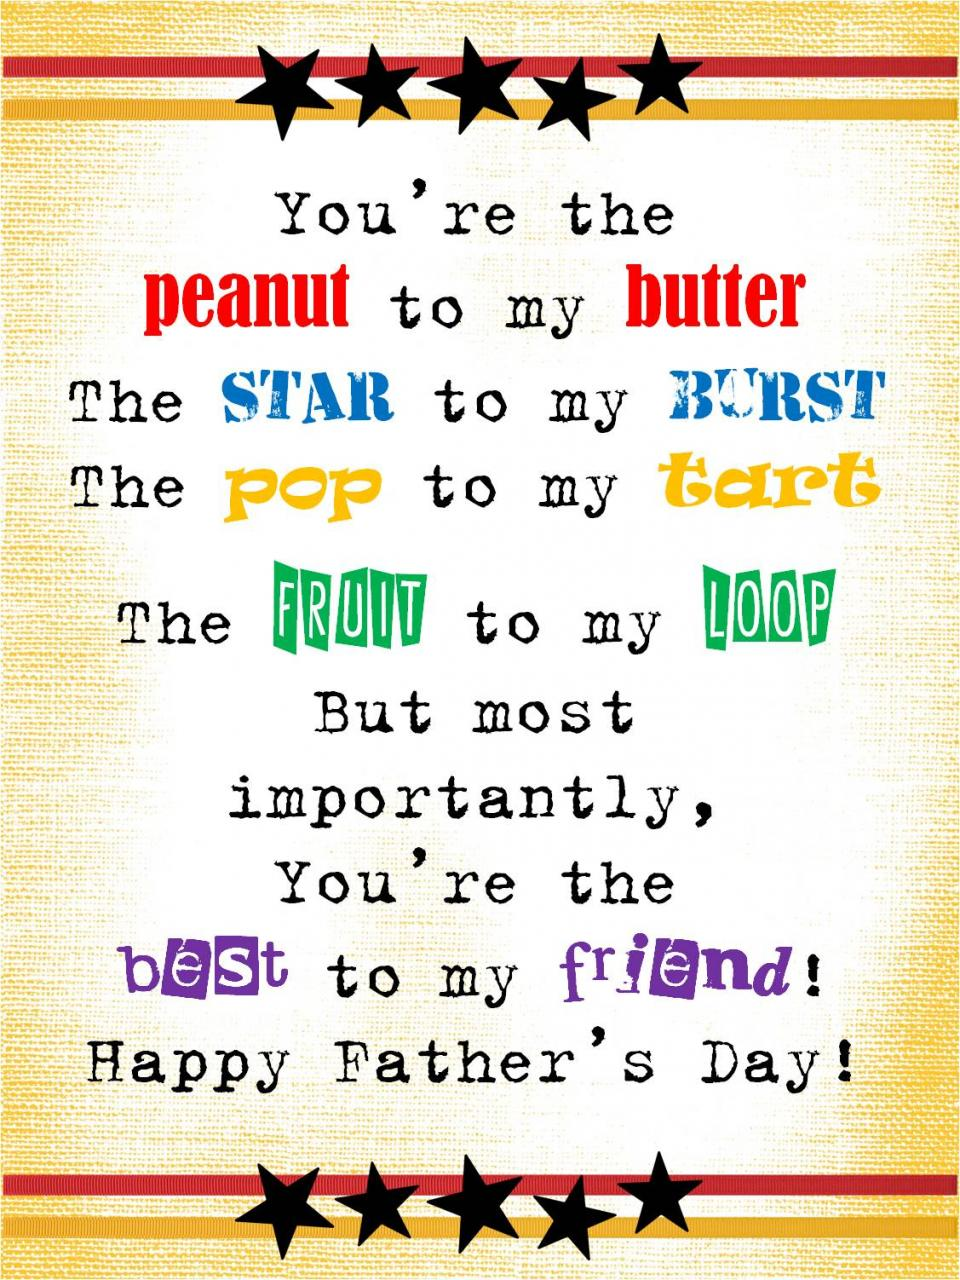 Fathers Day Poems 2019 | Inspiring Poems On Fathers Day